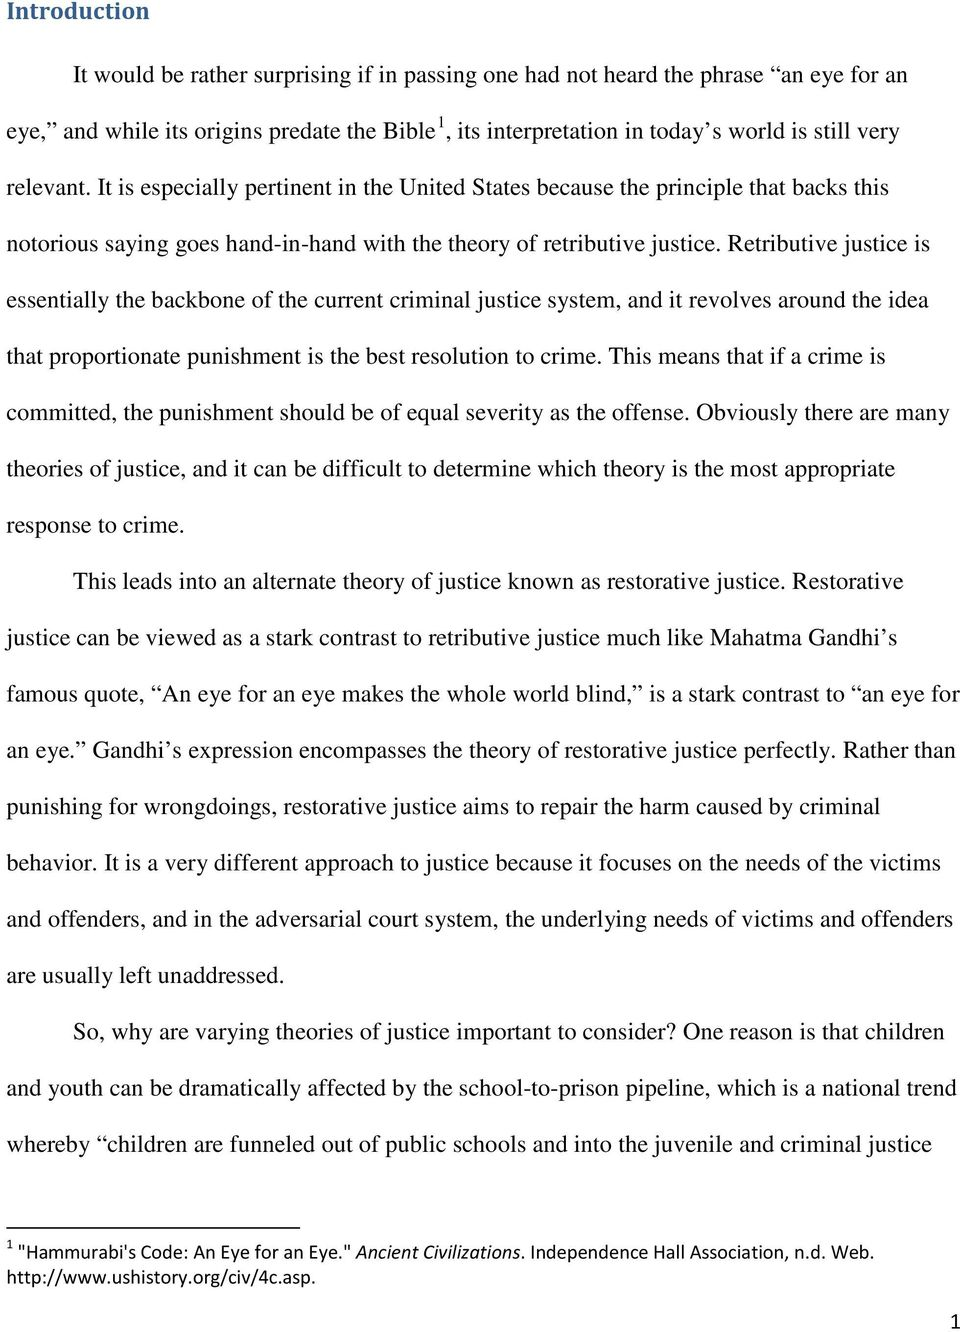 Retributive justice is essentially the backbone of the current criminal justice system, and it revolves around the idea that proportionate punishment is the best resolution to crime.